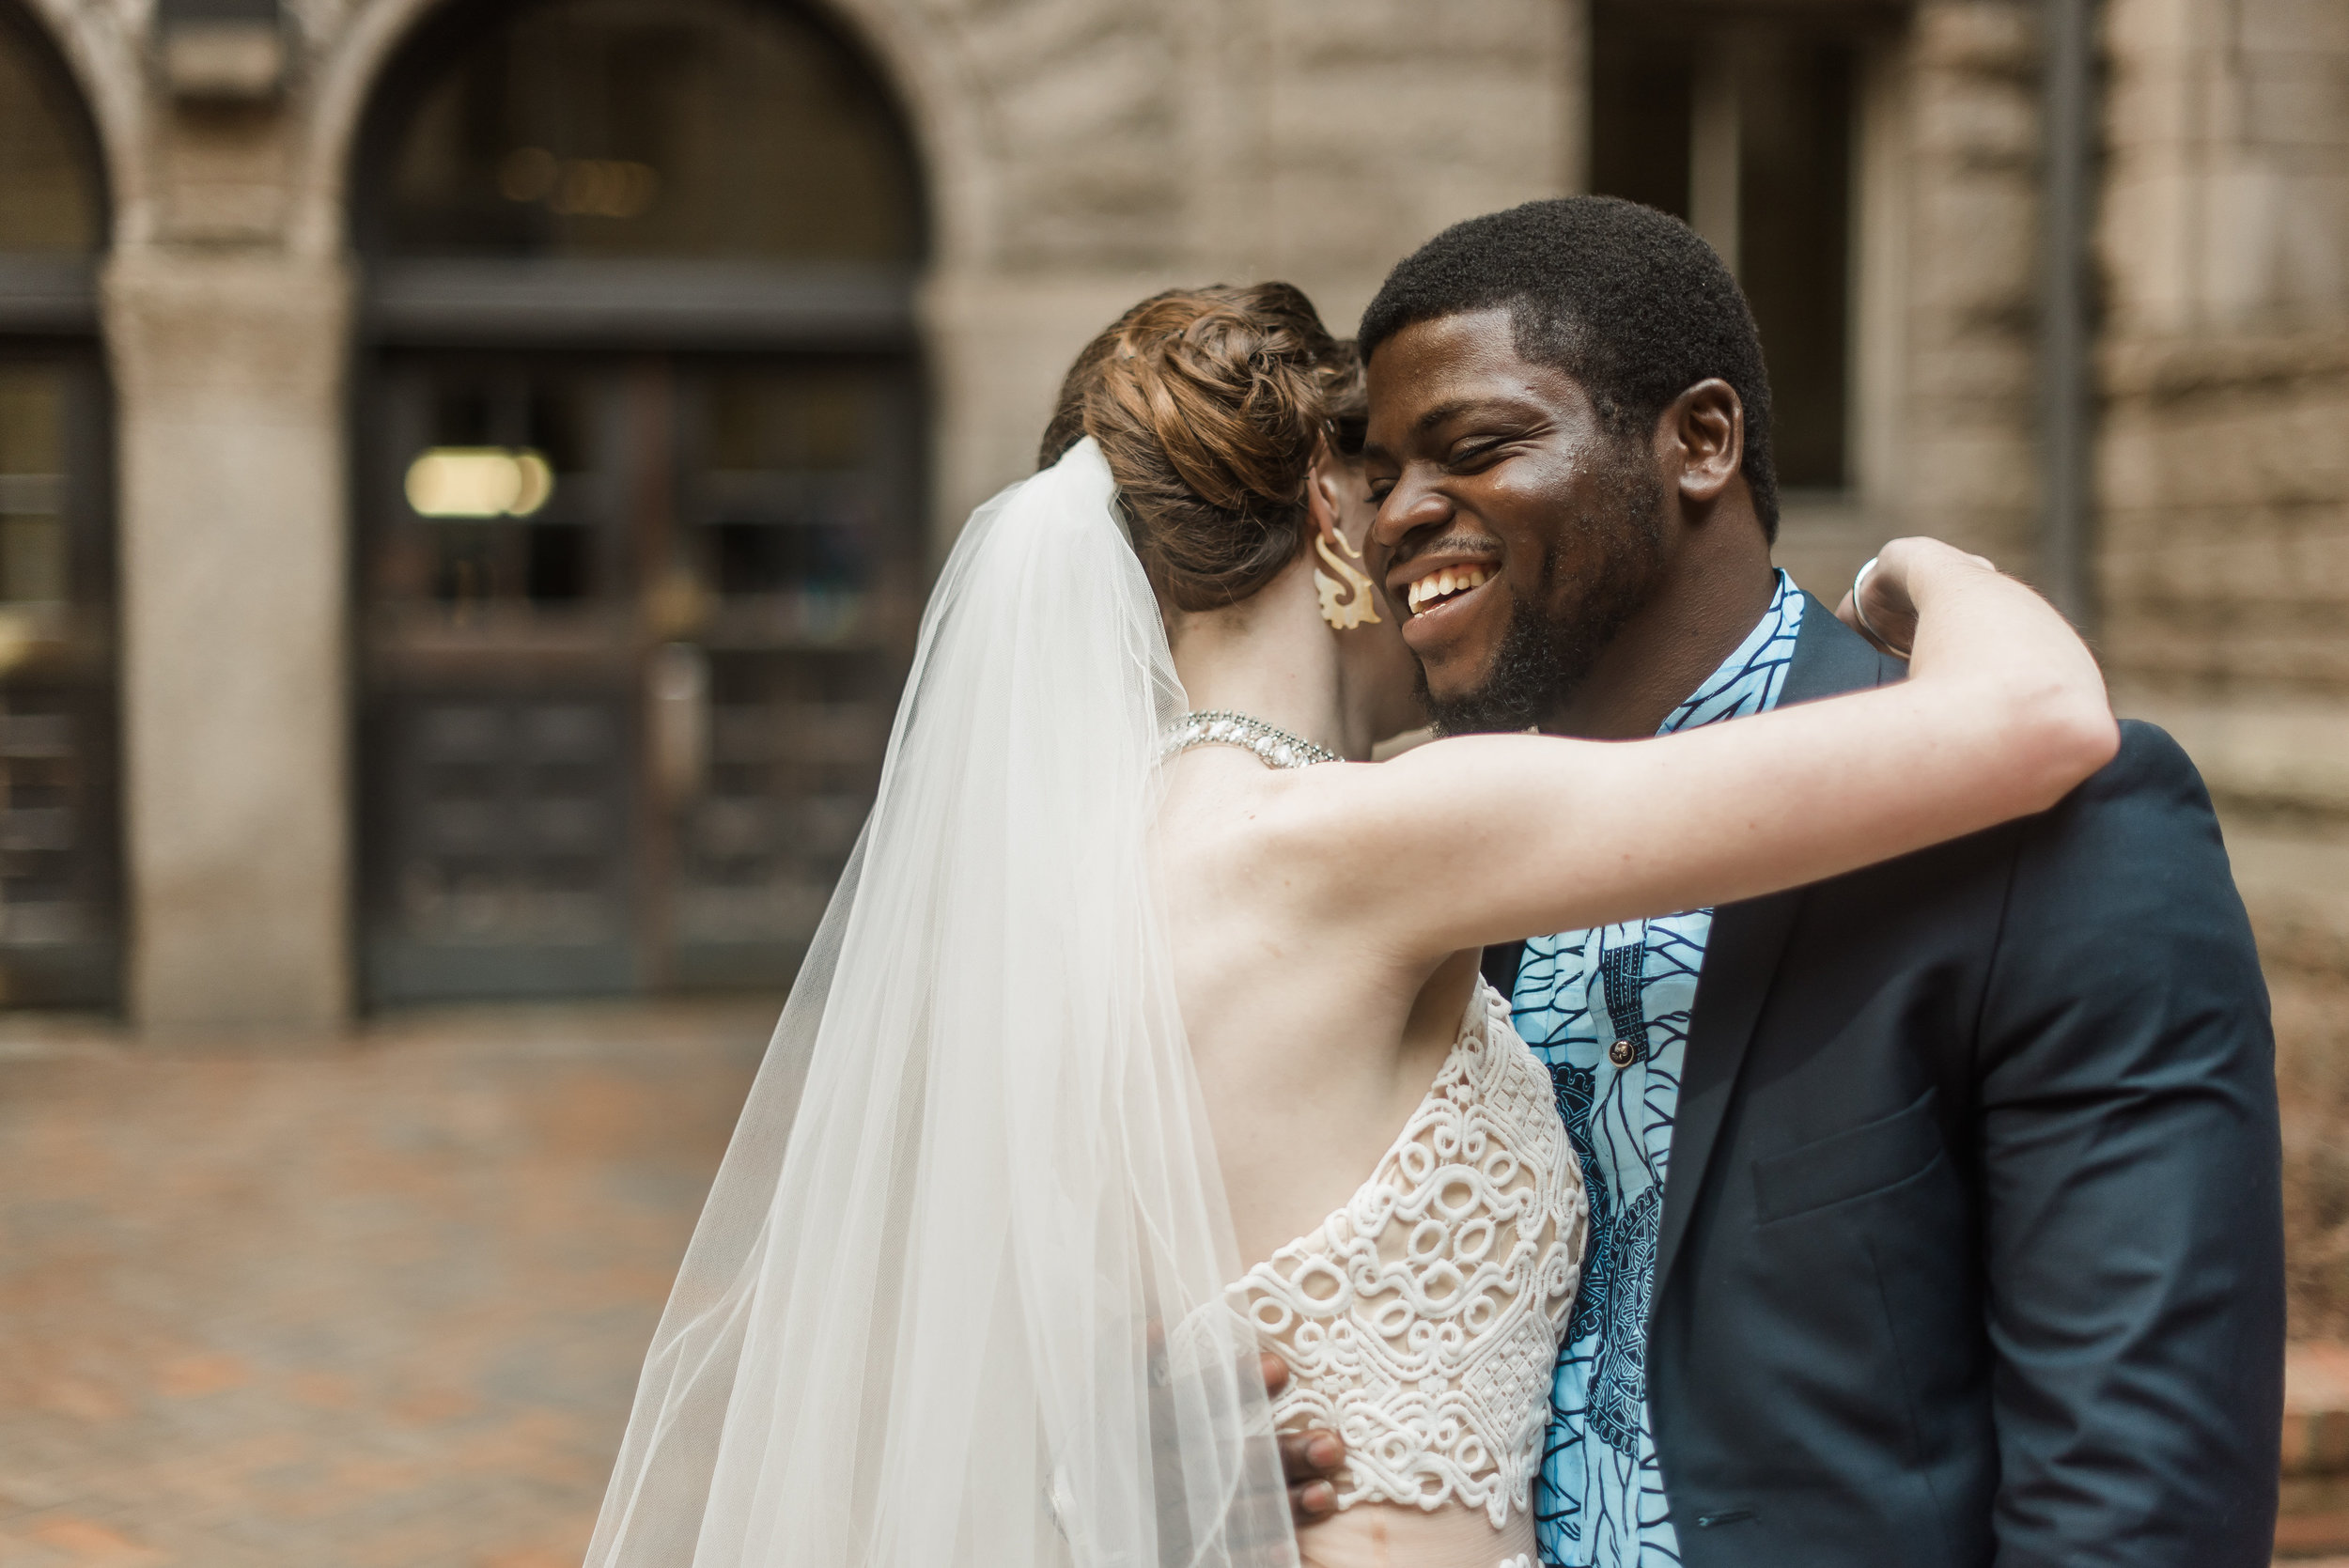 pittsburgh-wedding-photographer-elopement-courthousewedding-downtown-city0314.jpg